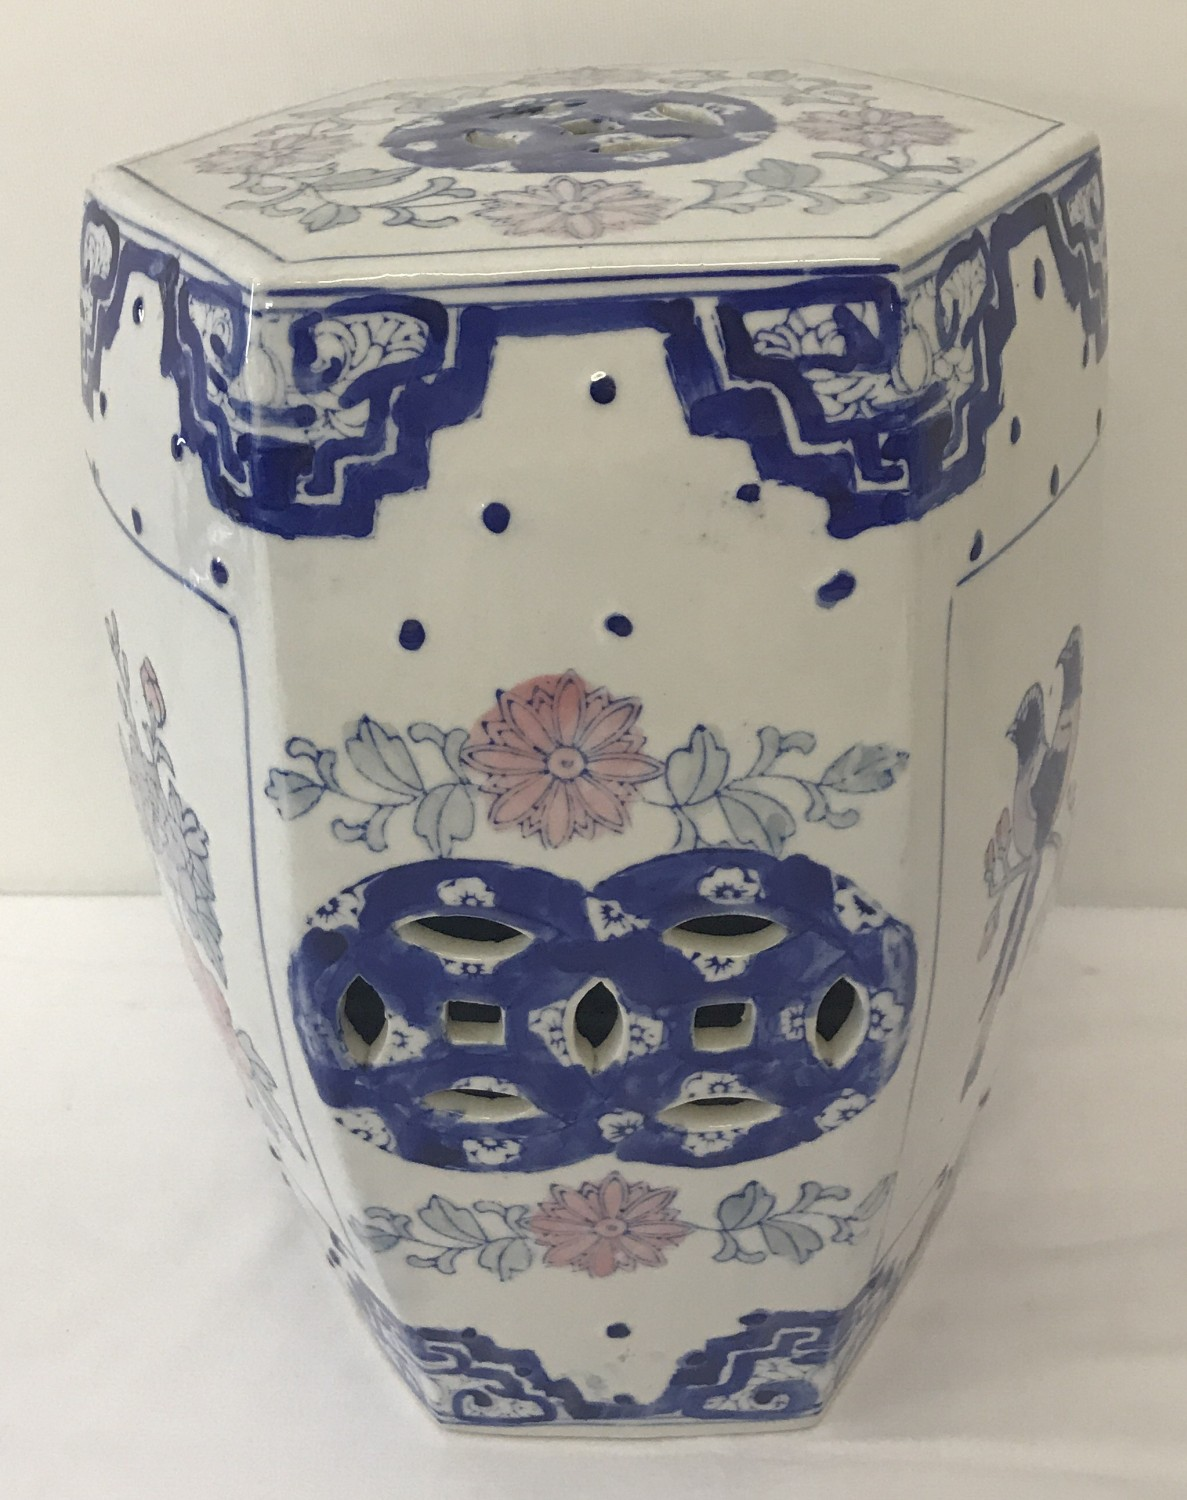 A Chinese hexagonal ceramic stool with pierced detail to sides and top.